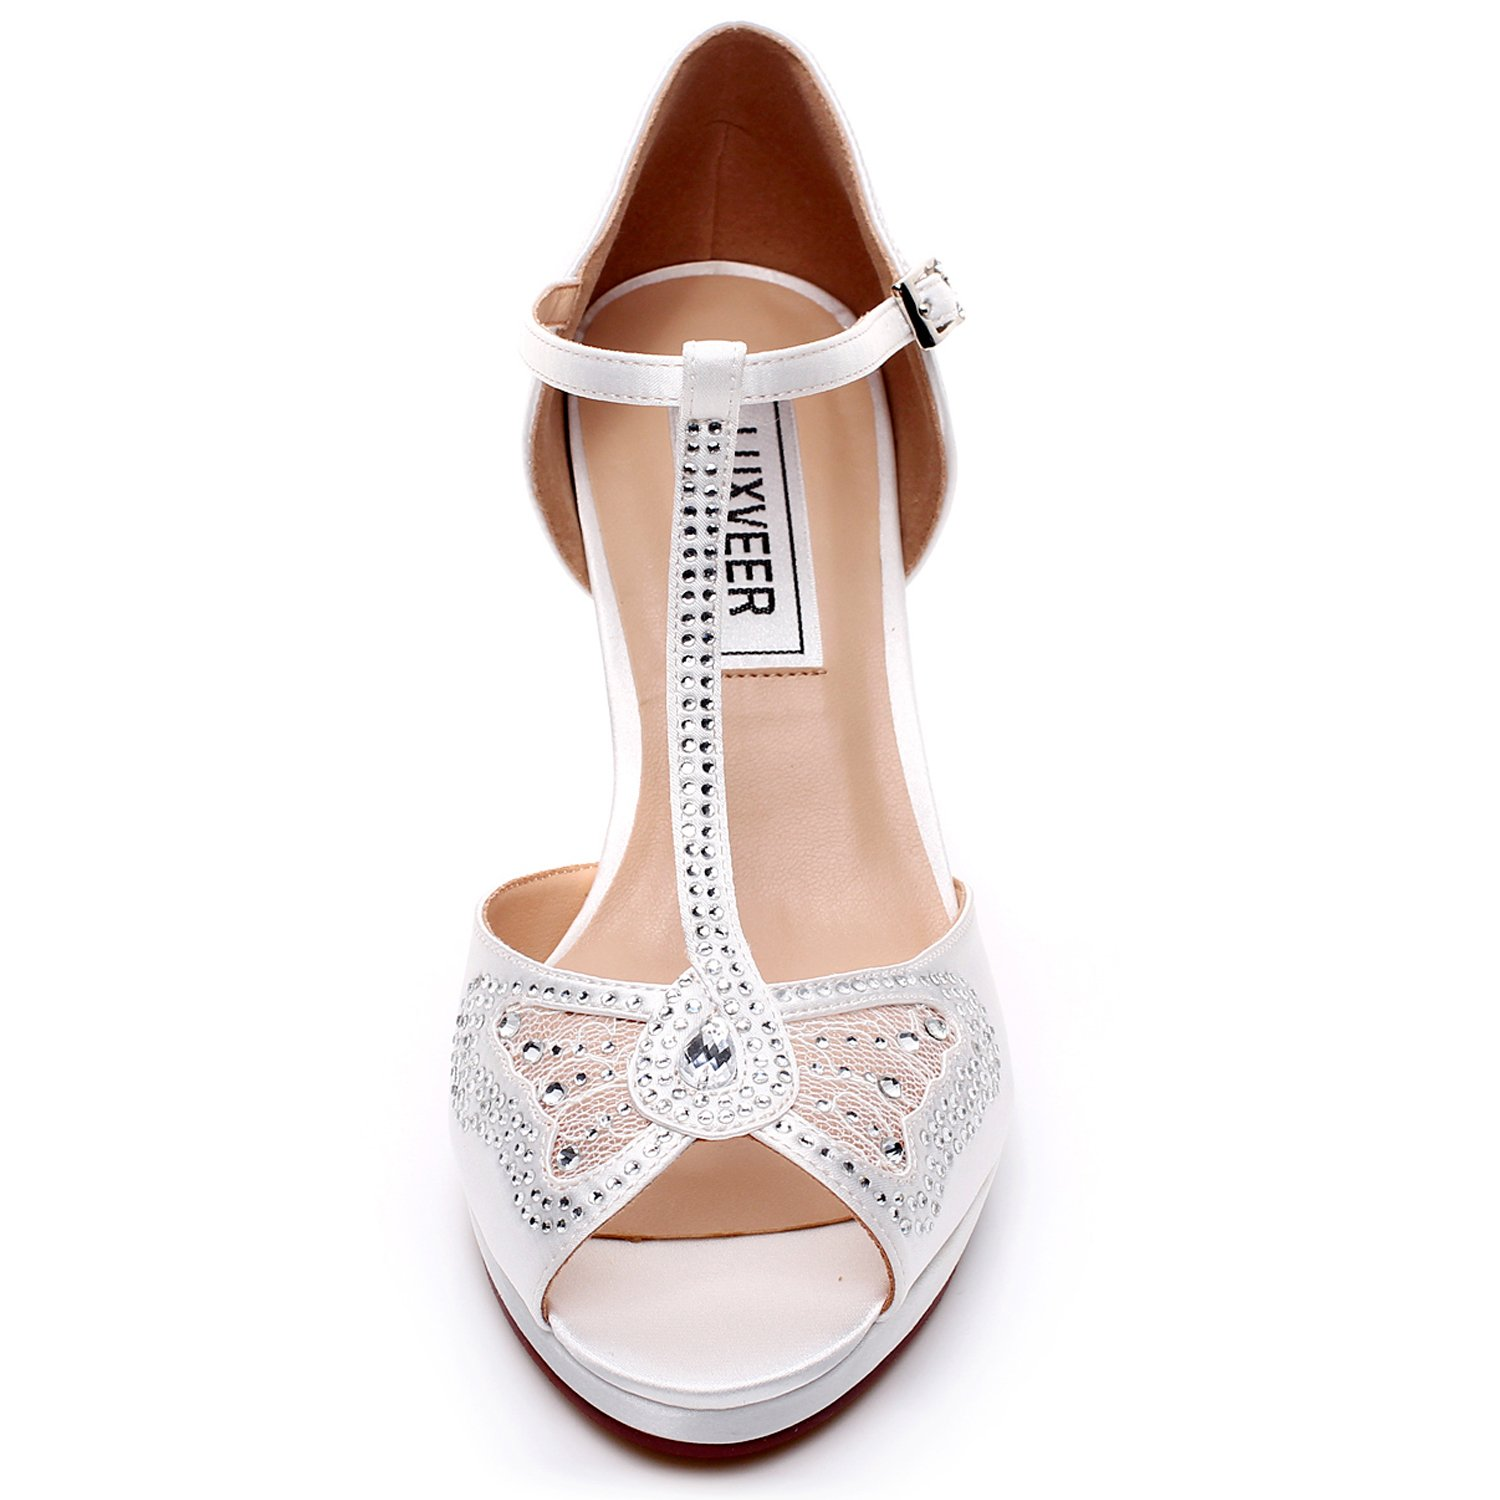 LUXVEER Wedding Sandals Heels for Women ,Silver Rhinestone and Lace Butterfly - Heels 3.5 inch-HK-0192C-Ivory-EU40 Wedding Shoes by LUXVEER (Image #4)